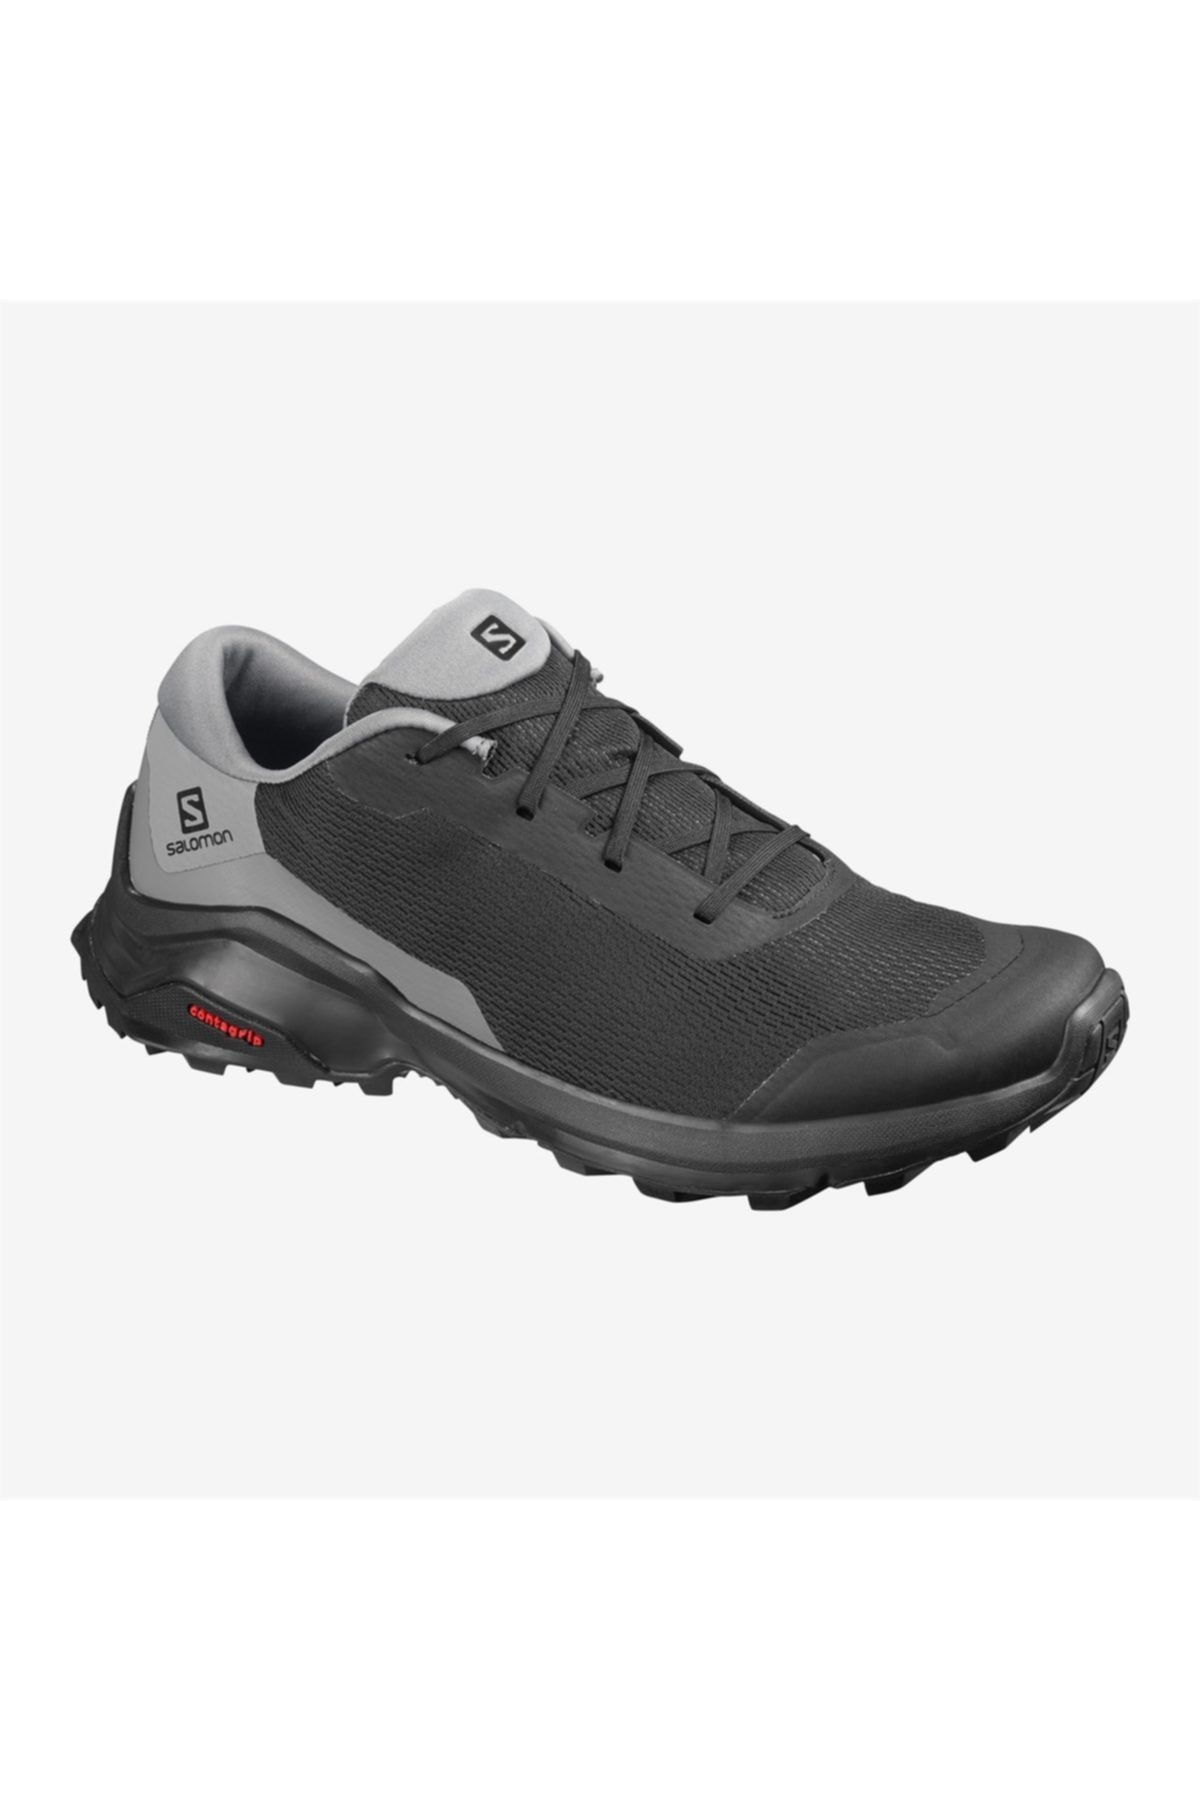 Salomon X Reveal Erkek Outdoor Ayakkabı - L41042000-black/black/quiet Shade 1